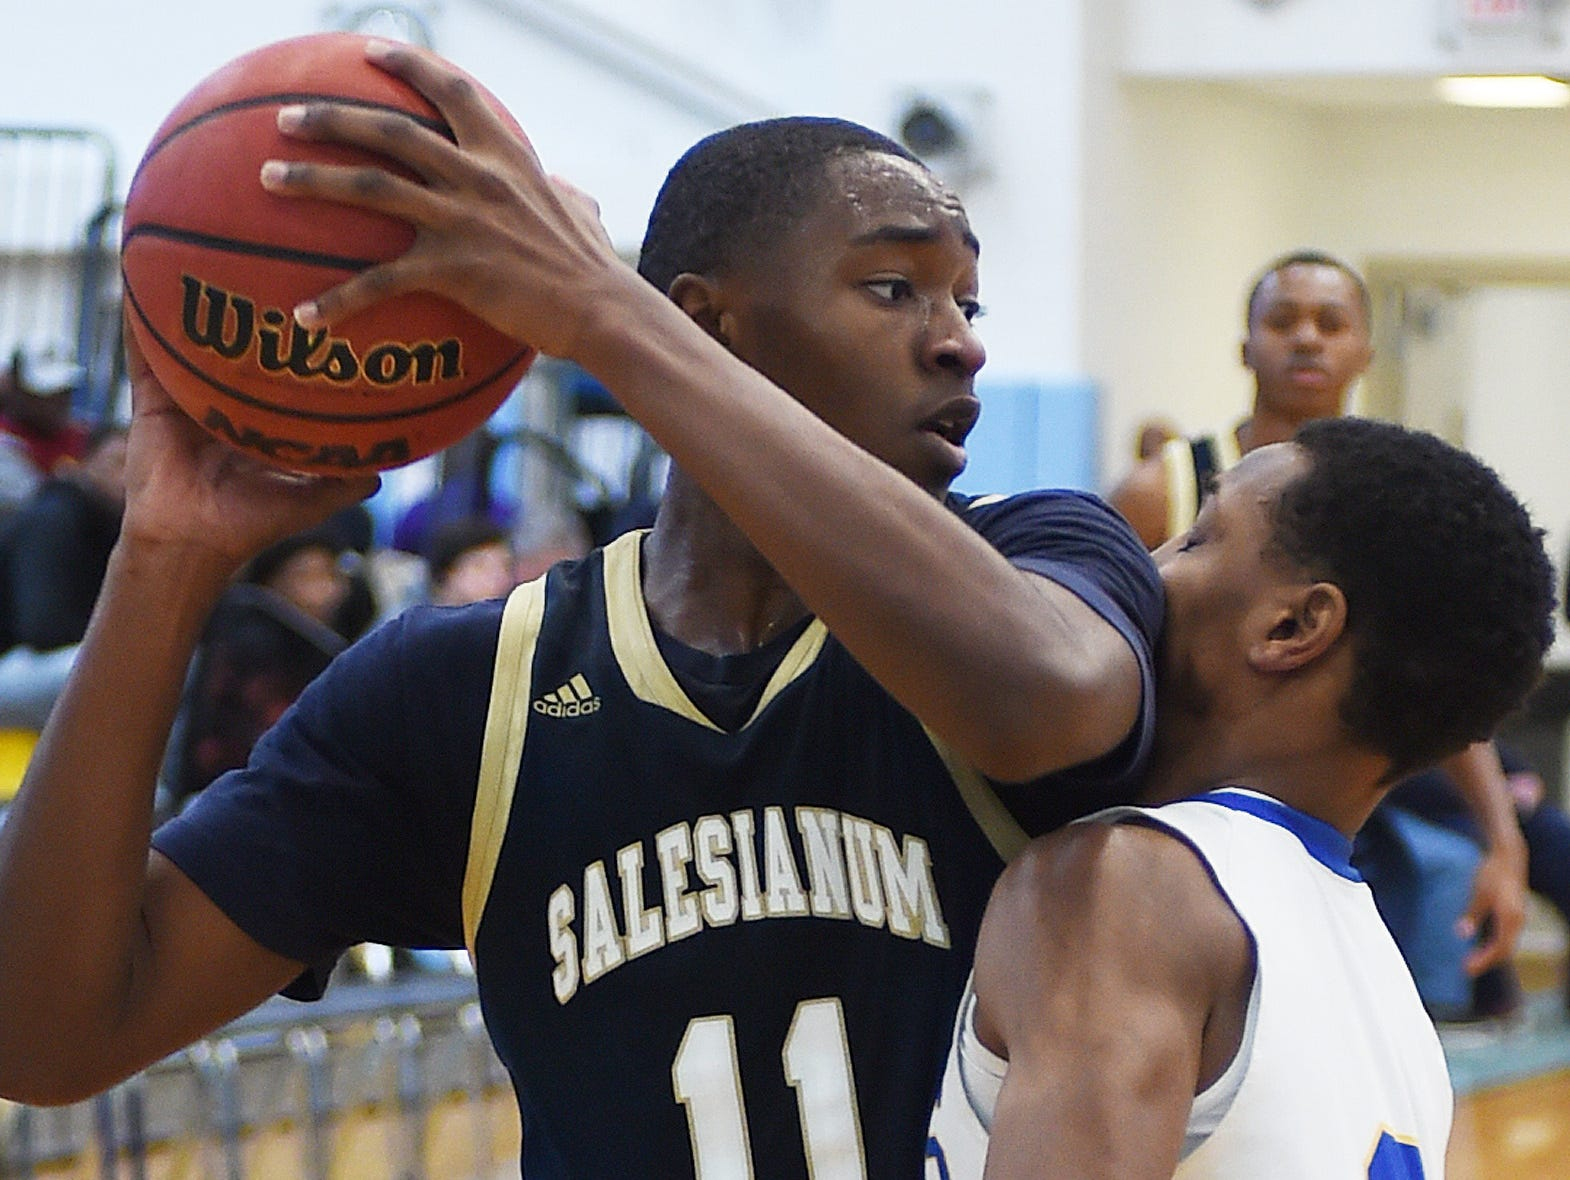 Sallies #11 Darnell Vaughan hits the chin of CR's #3 William Scott as Slam Dunk to the Beach kicked off on Thursday December 27th with the opening game of Caesar Rodney playing Salesianum at the tournament held at Cape Henlopen High School.